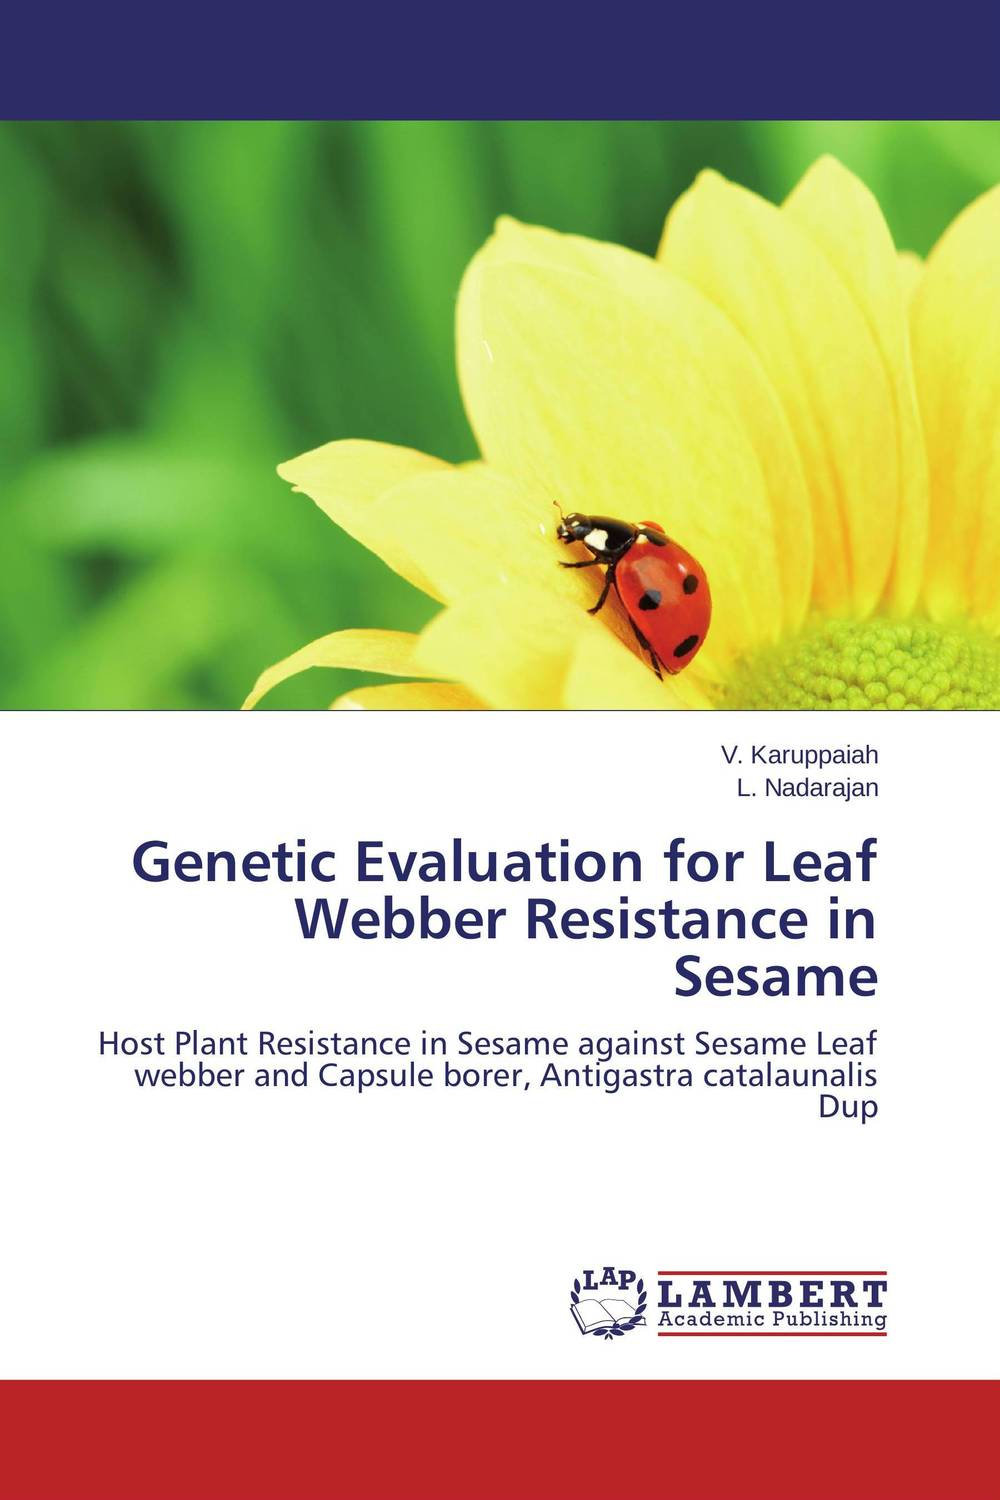 Genetic Evaluation for Leaf Webber Resistance in Sesame wheat breeding for rust resistance